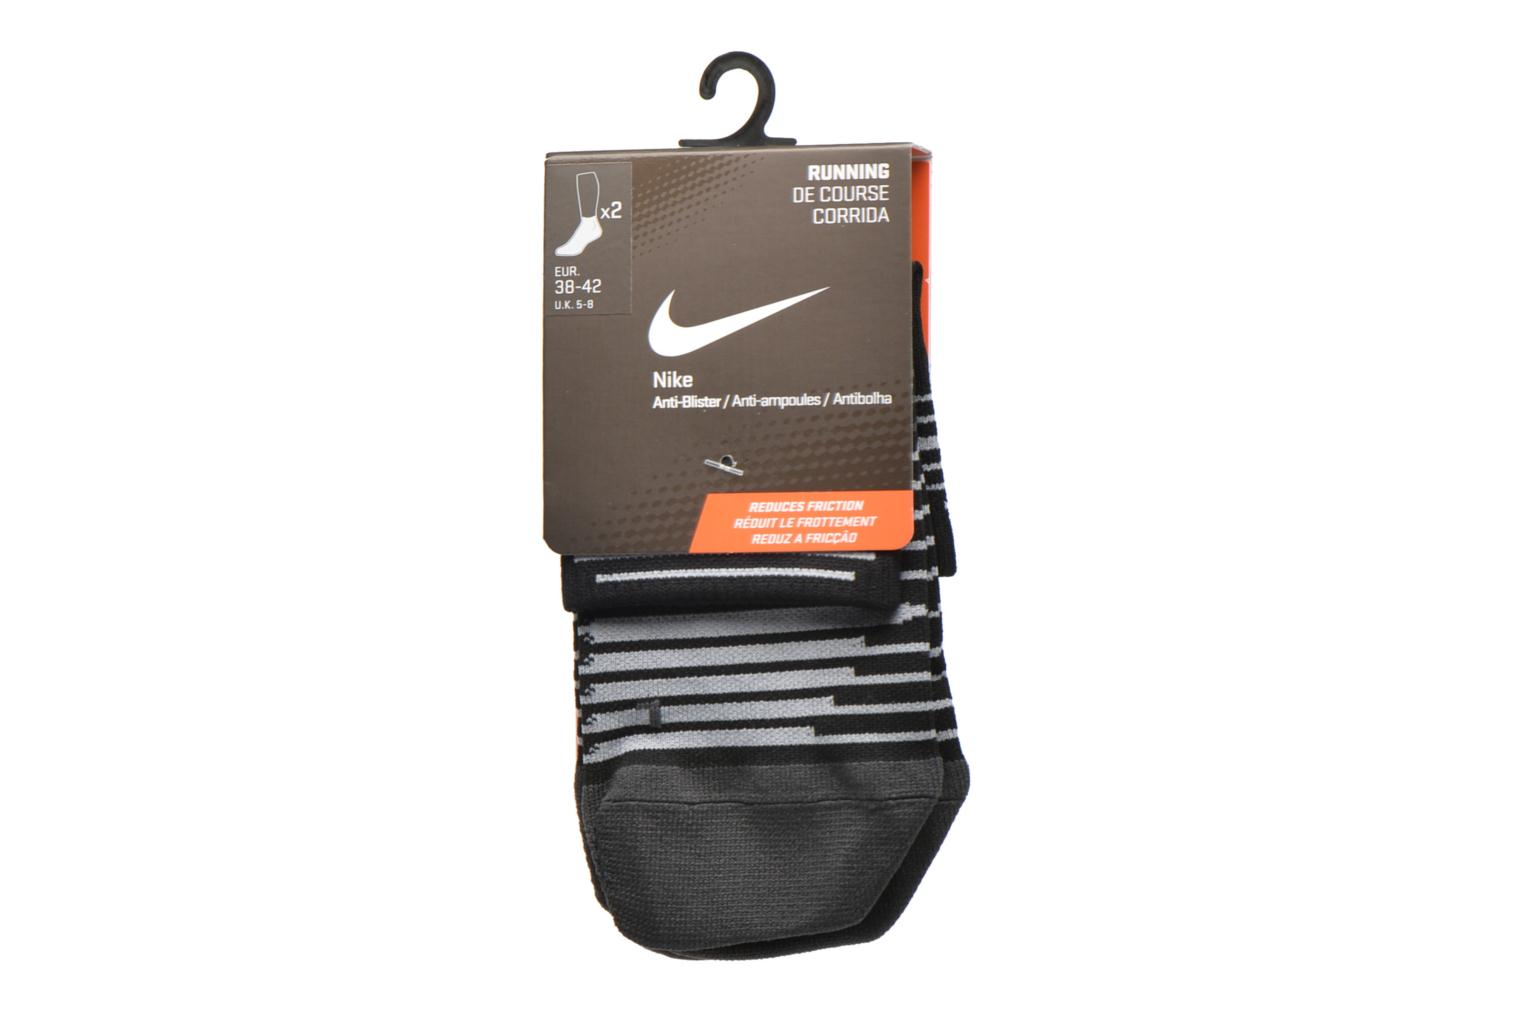 Socks & tights Nike Nike Dri-FIT Lightweight Quarter Running Sock (2 Pair) Black back view